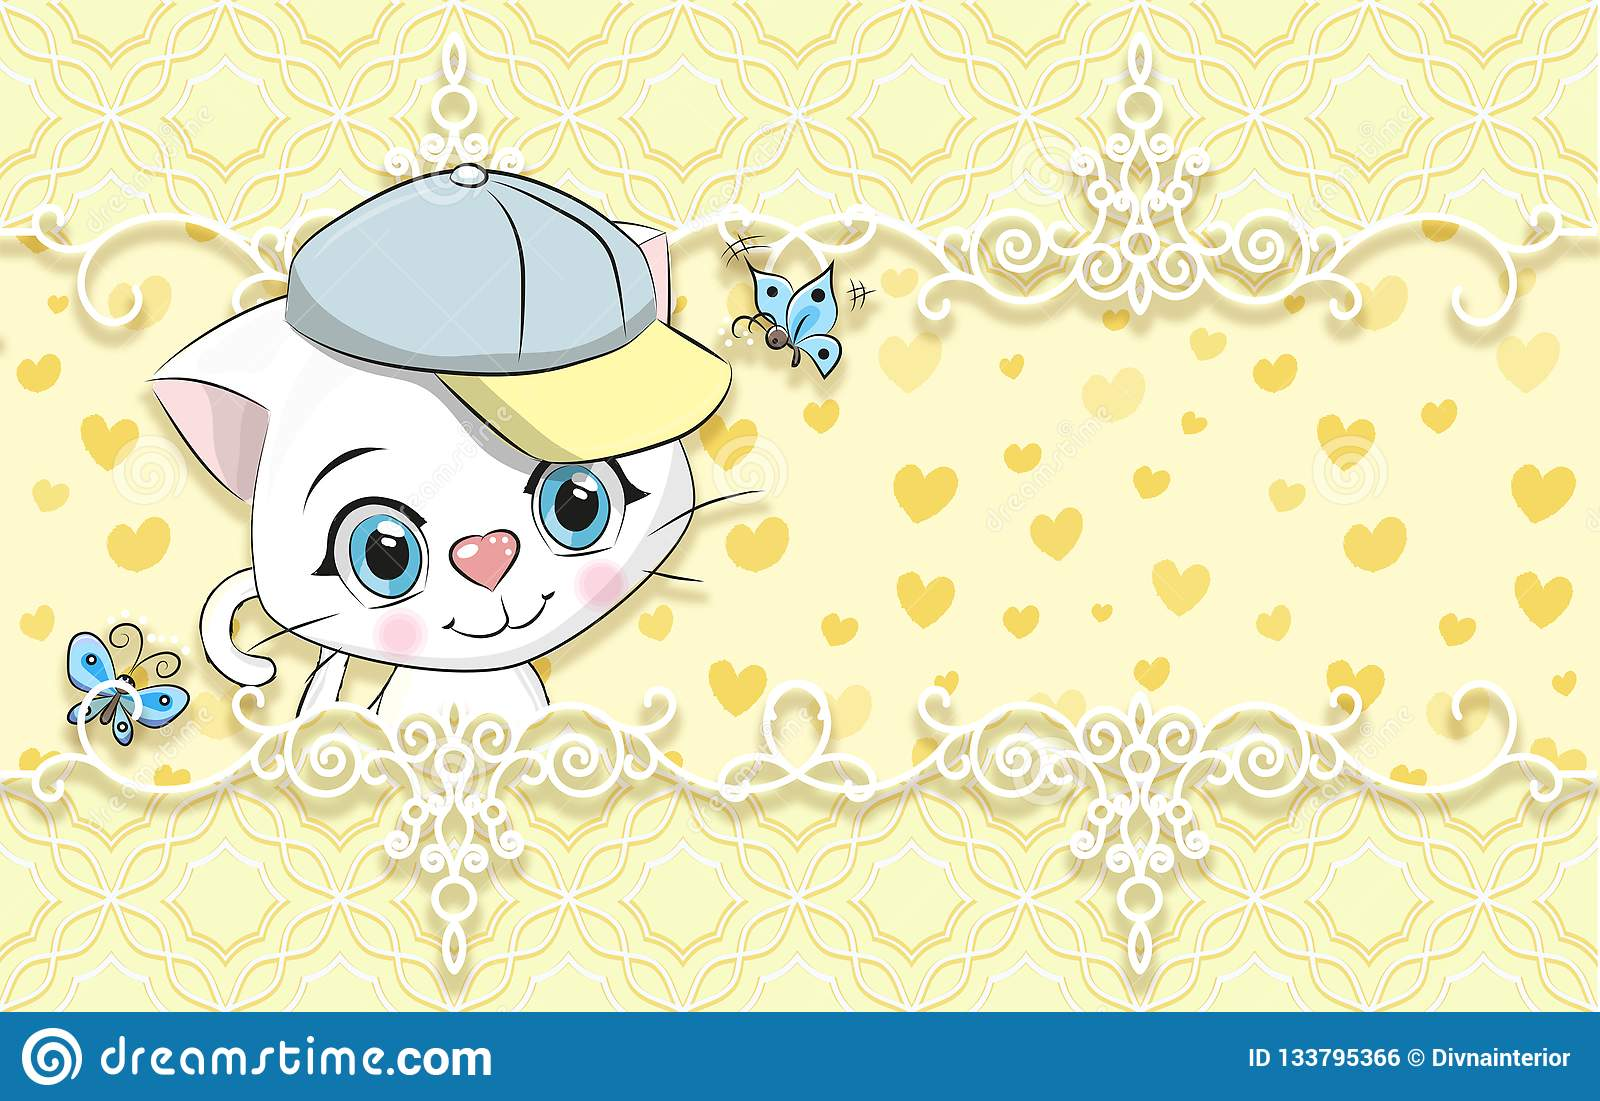 3d Wallpaper Cute Yellow Background With Kitten Stock